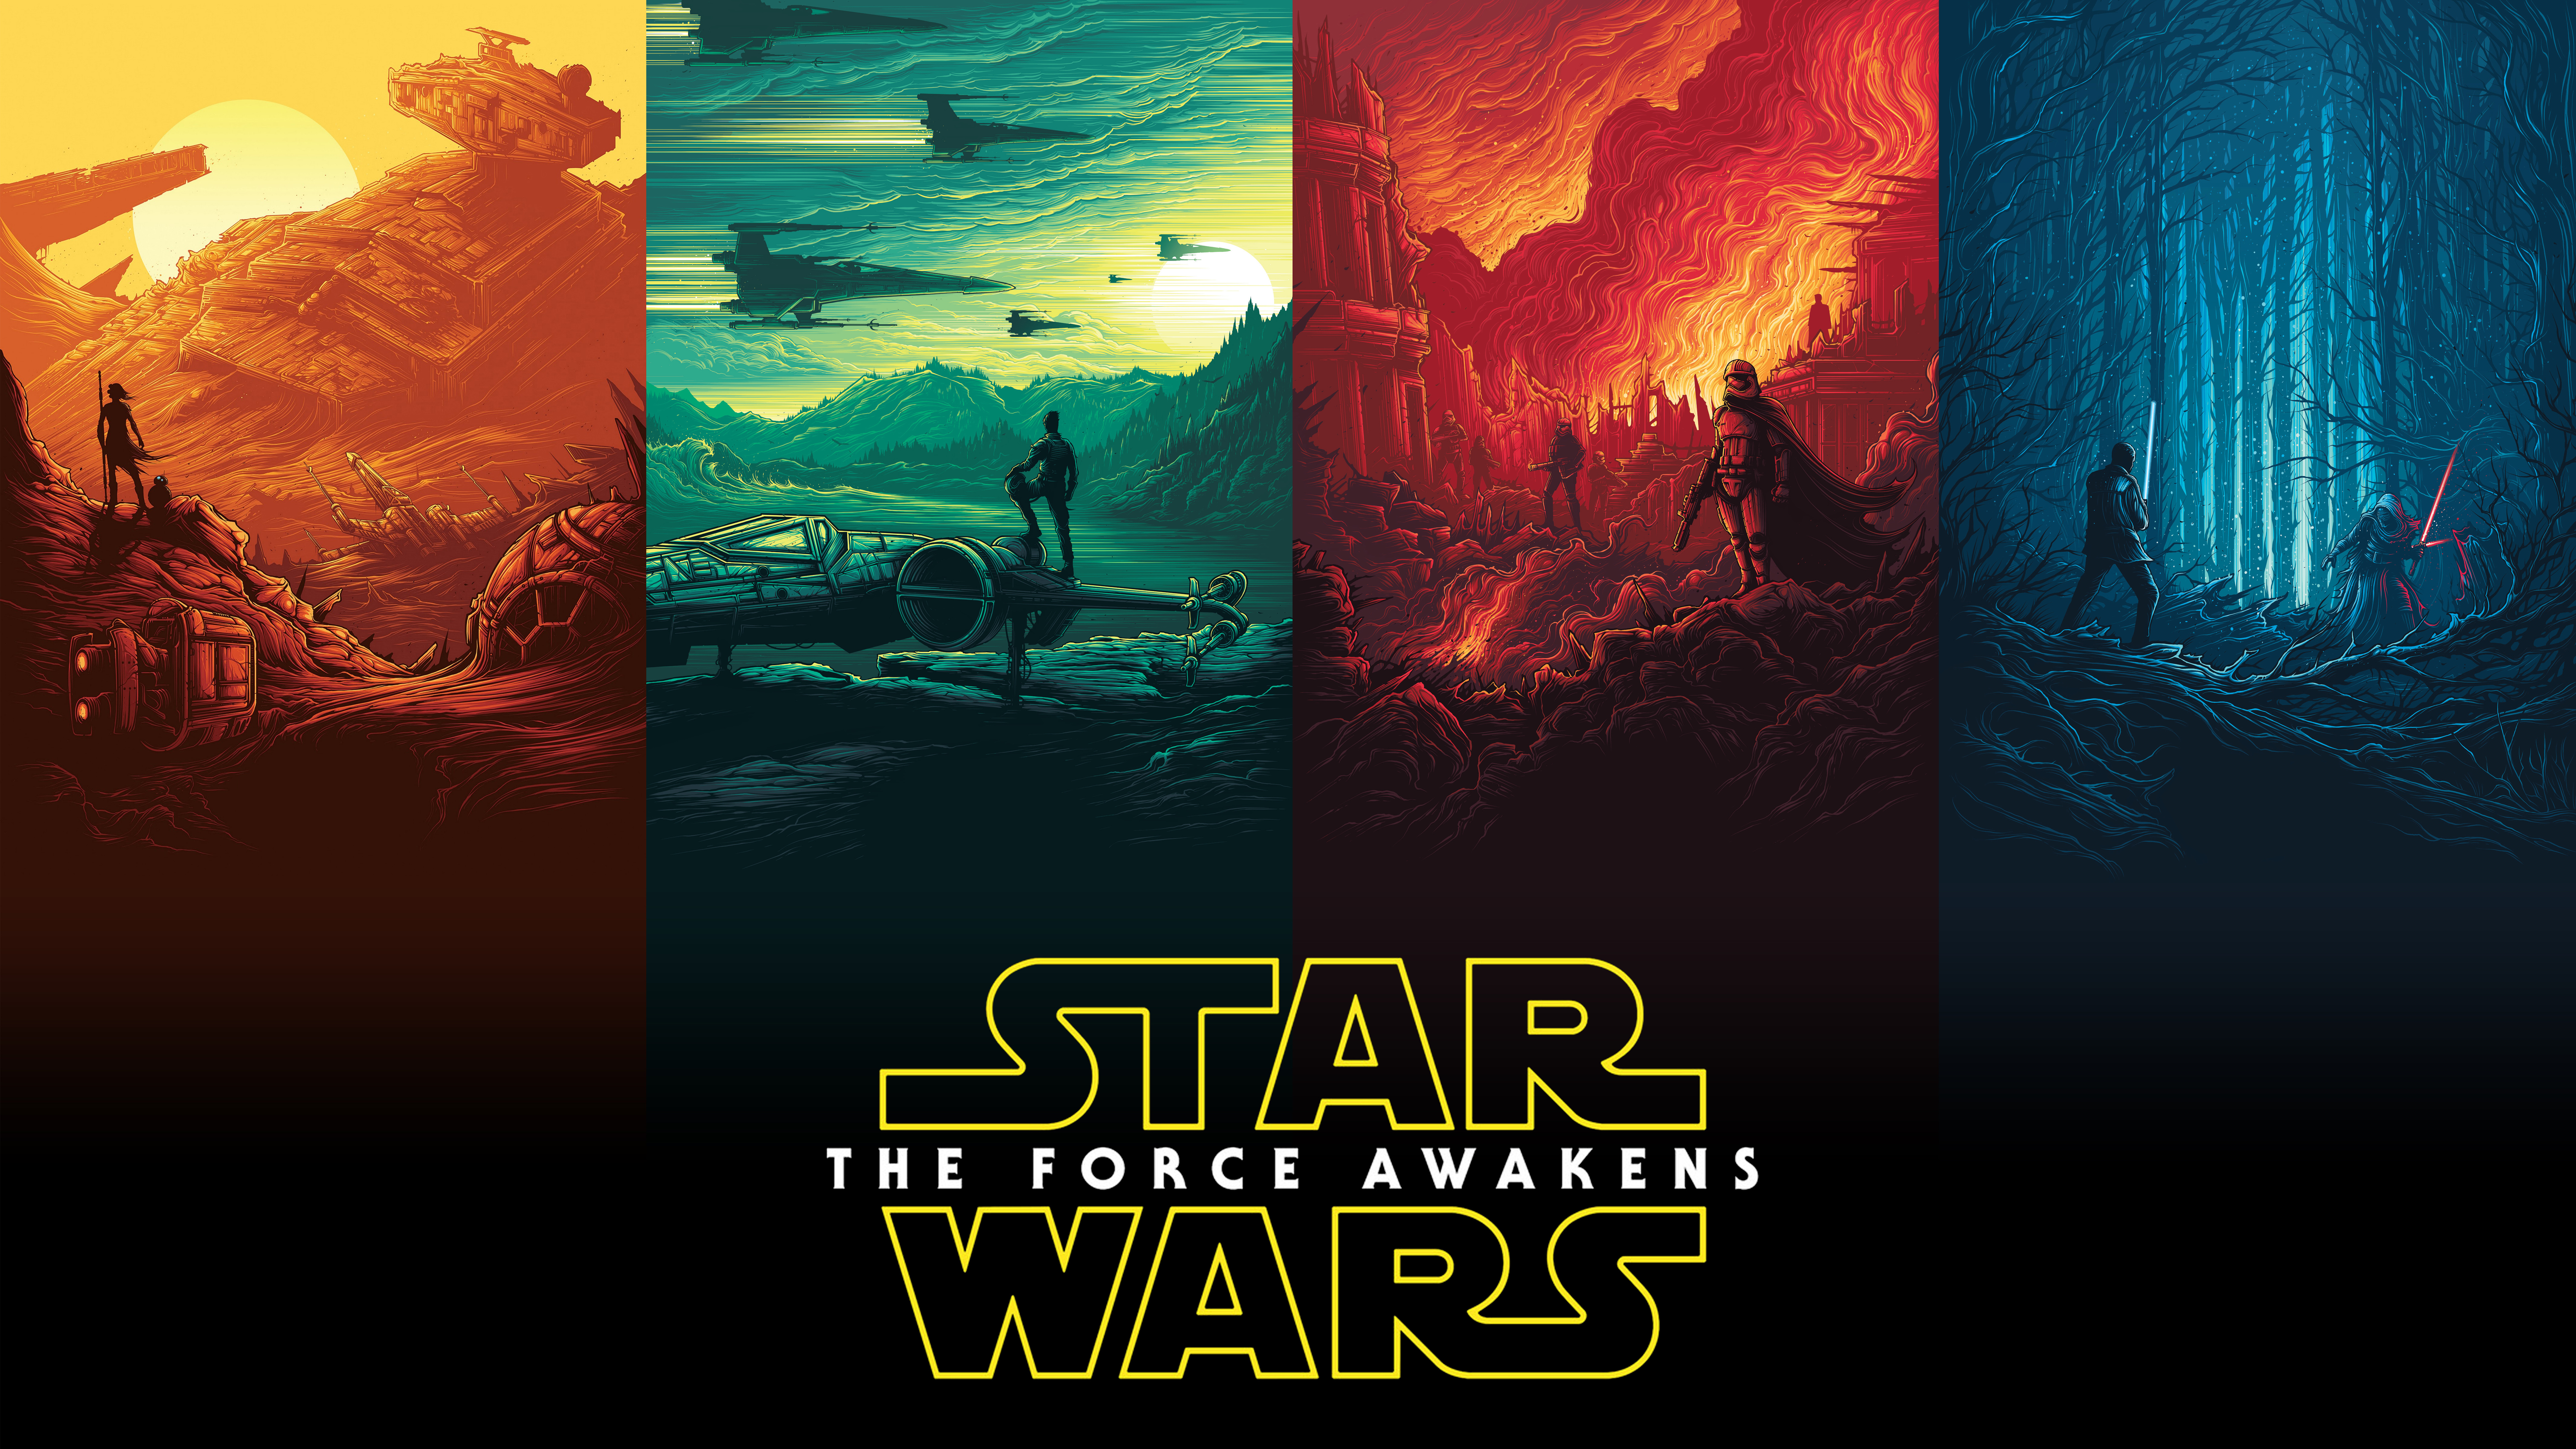 1440x900 Star Wars Poster Logo 1440x900 Resolution Hd 4k Wallpapers Images Backgrounds Photos And Pictures